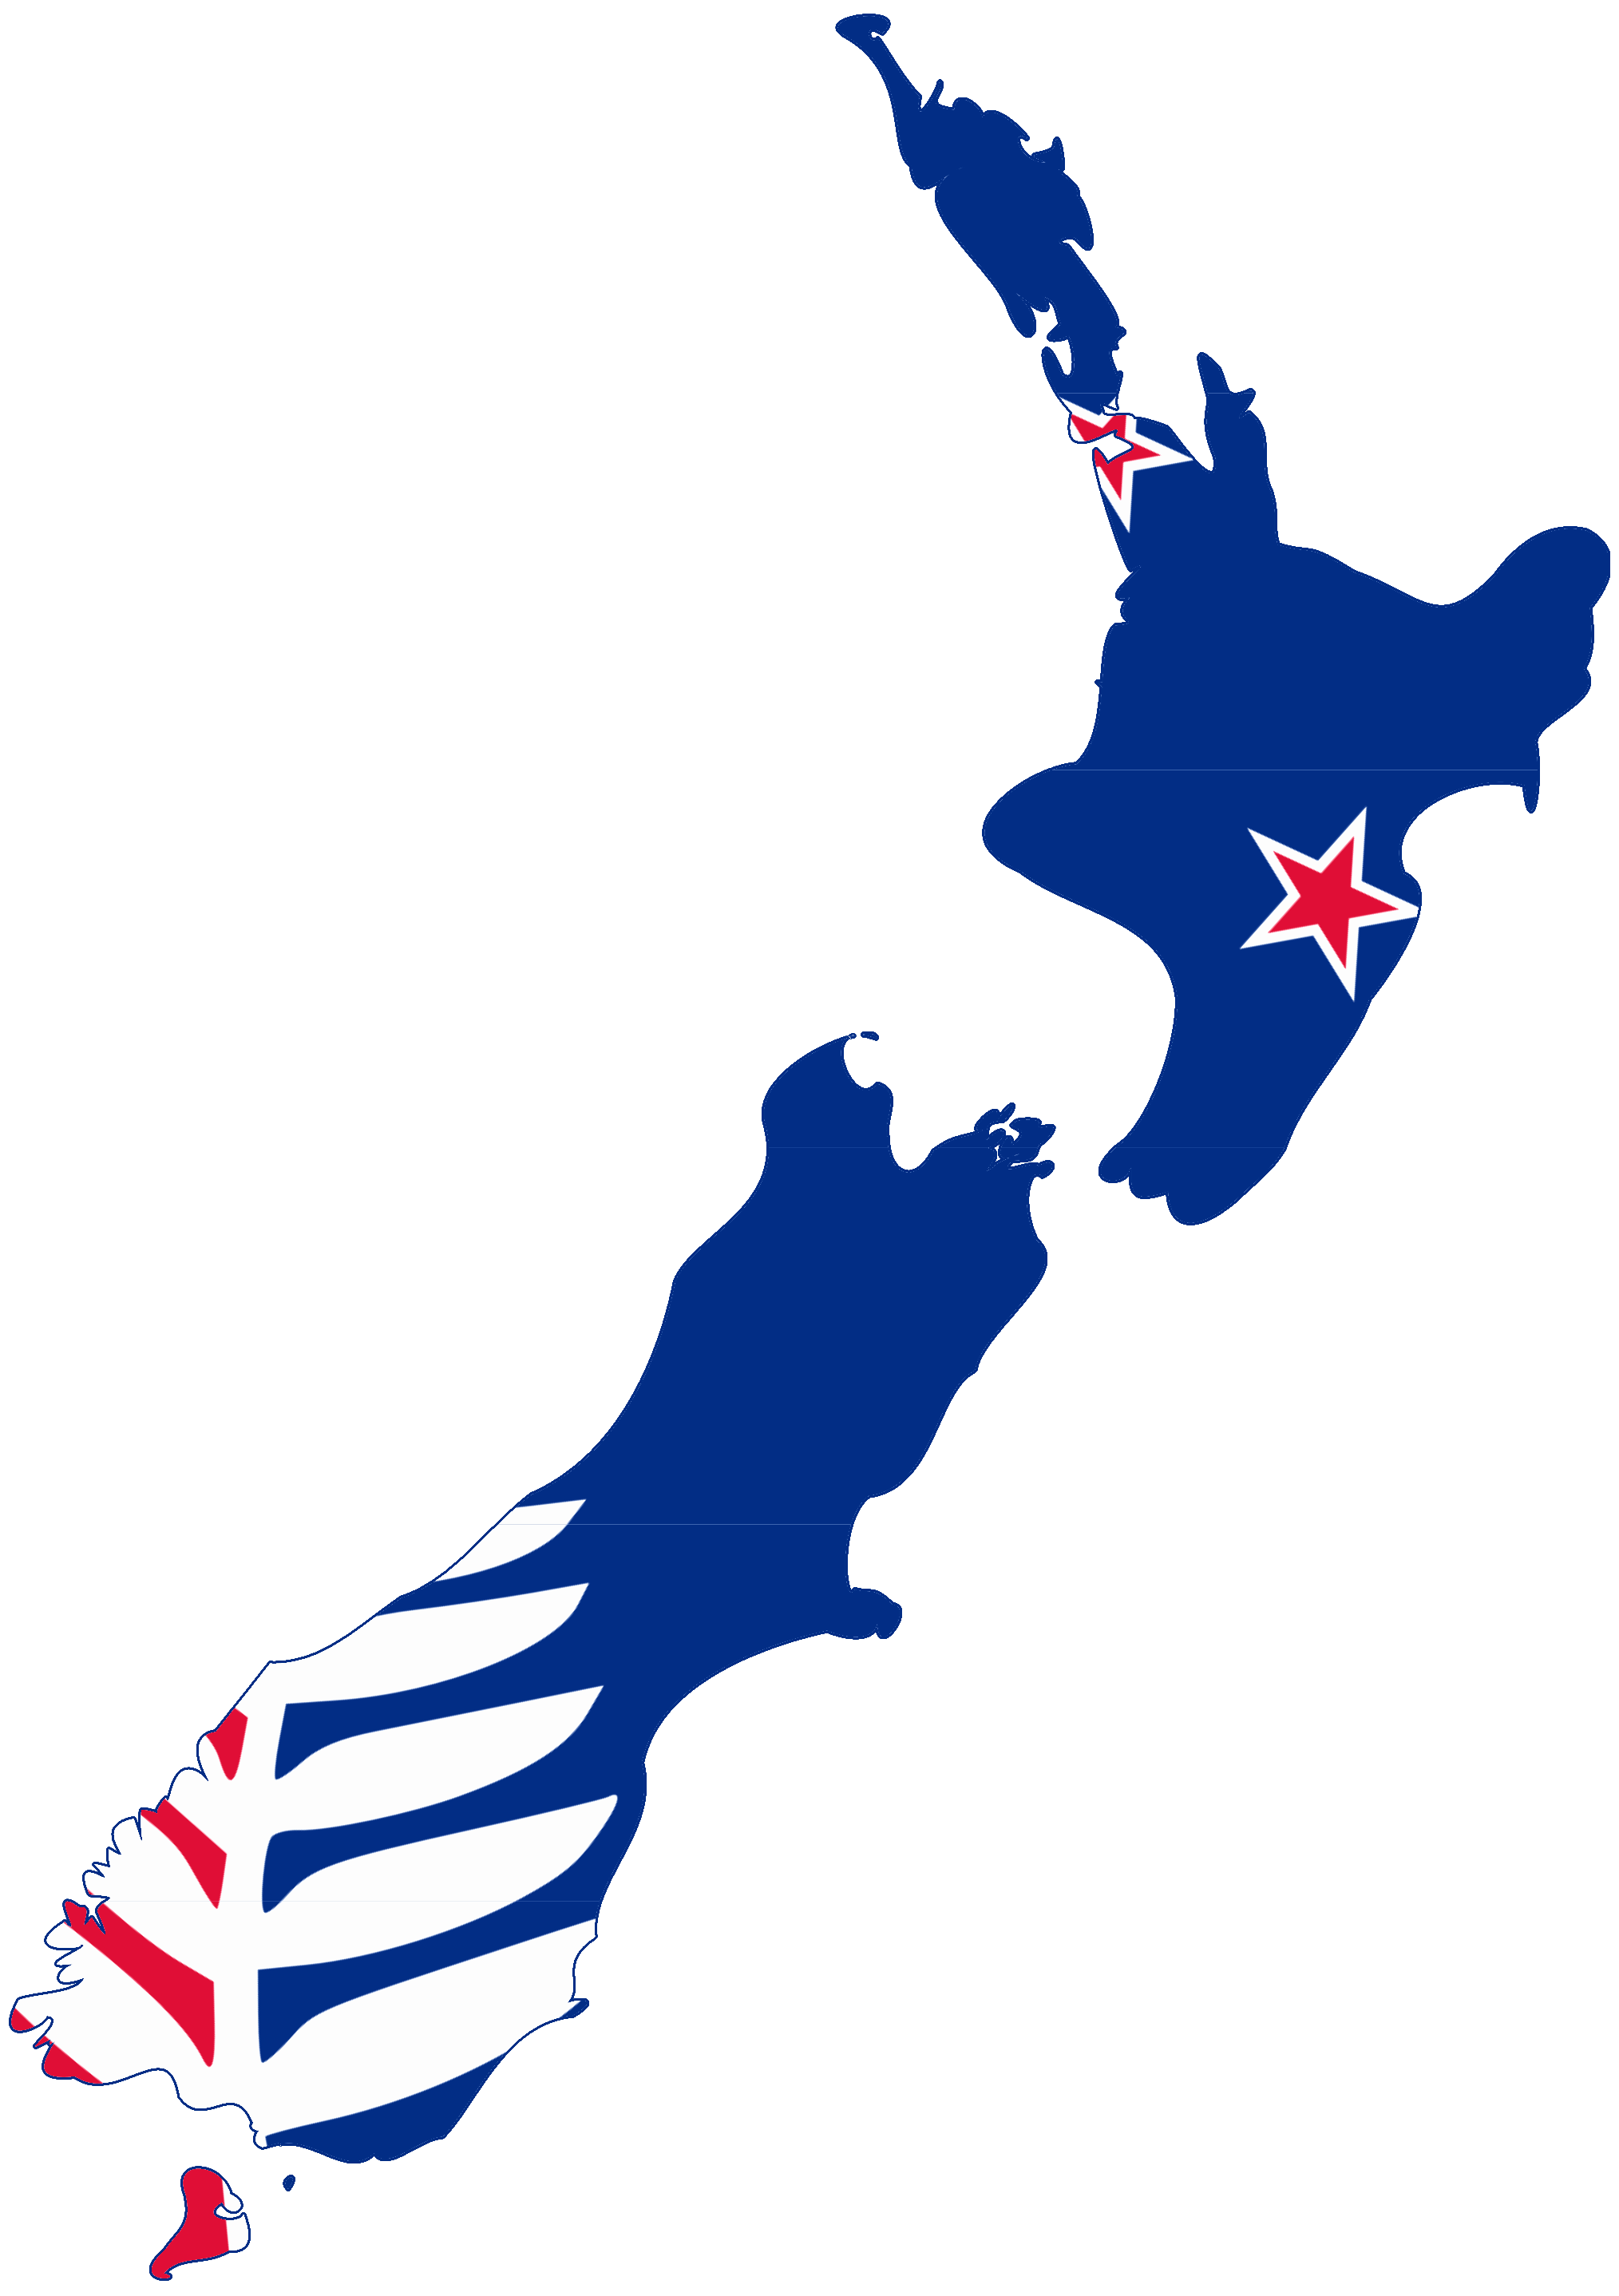 New zealand map png.